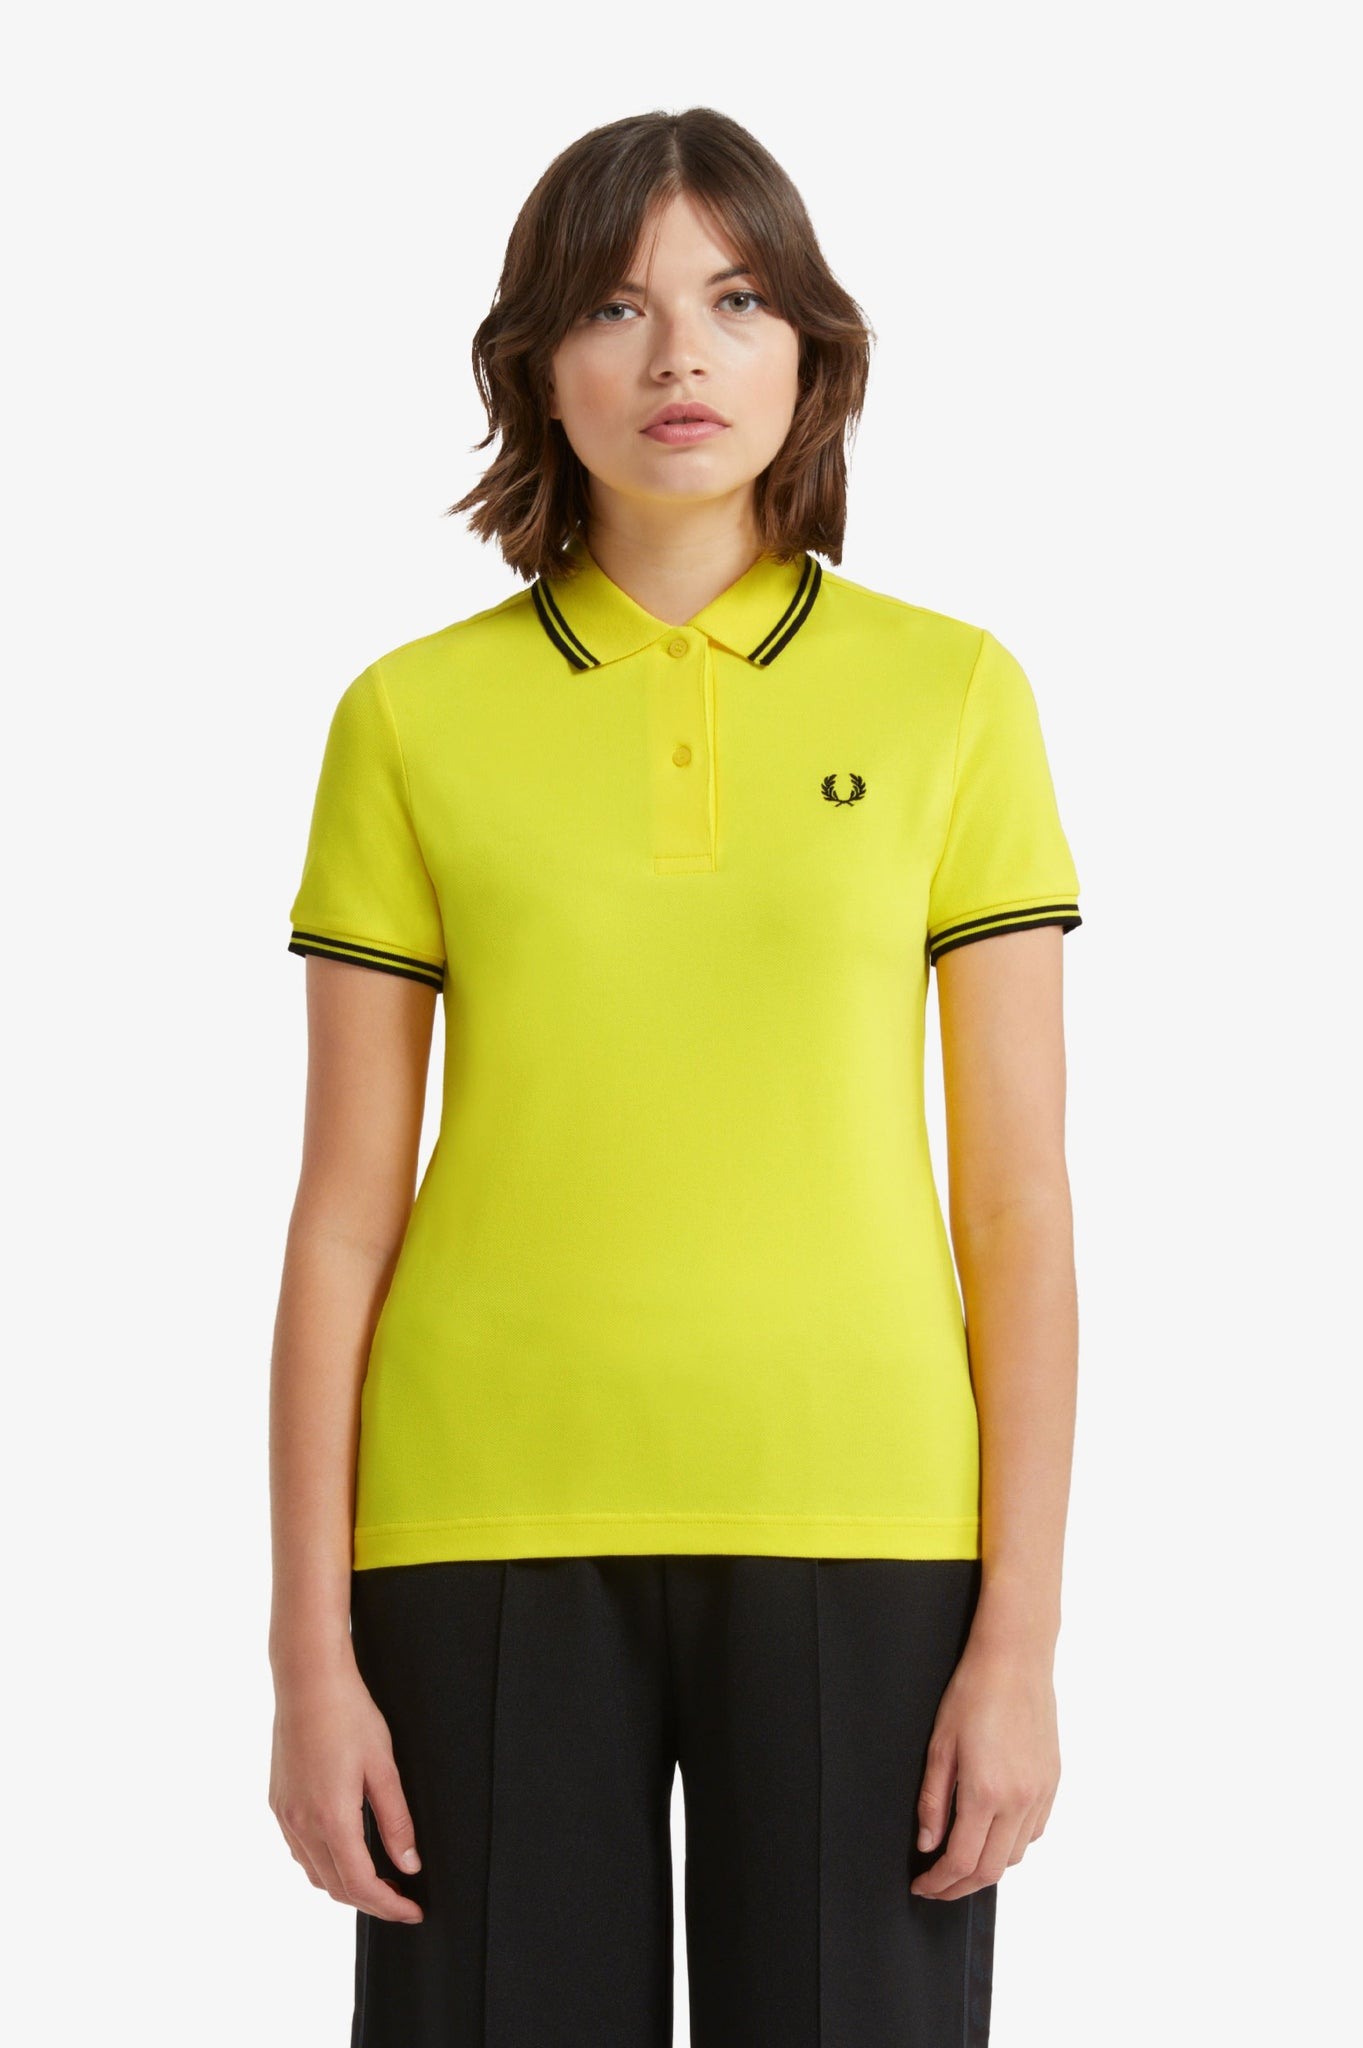 Ladies Fred Perry Golden Kiwi Polo with Black Twin Tipping